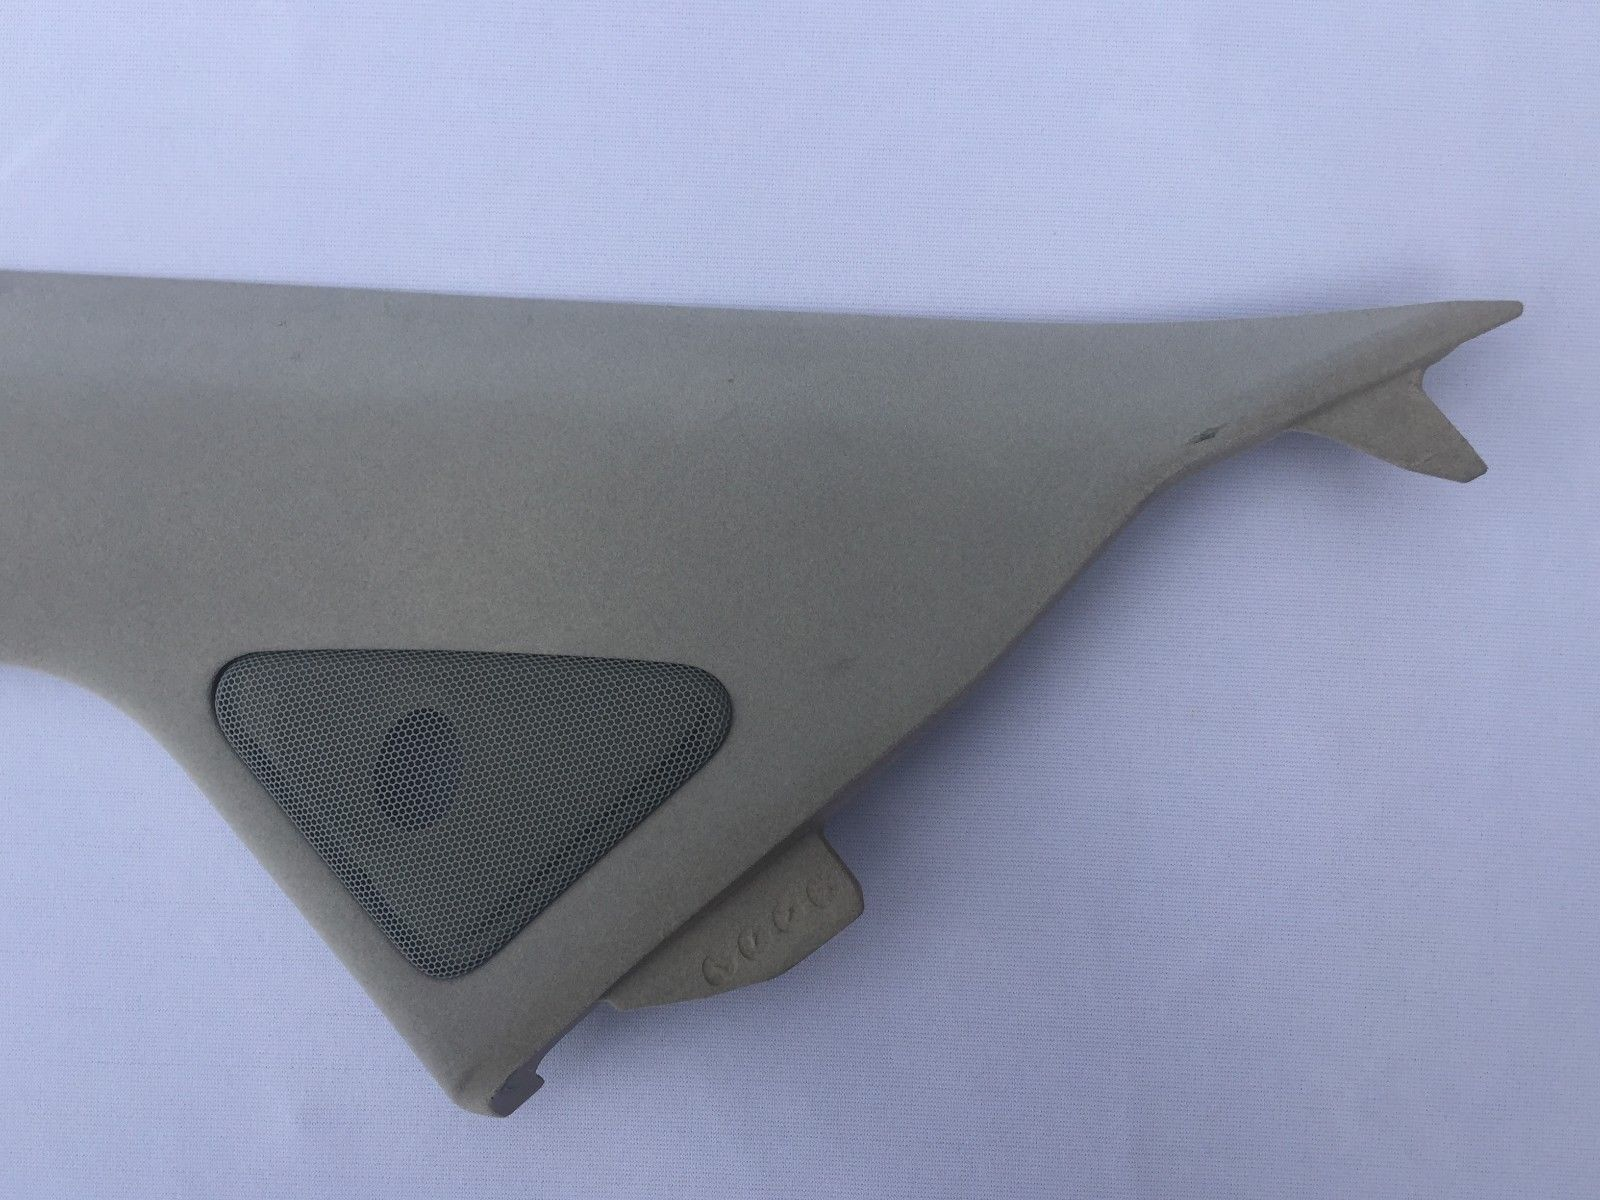 2004-2006 LEXUS RX 330 GRAY FRONT LEFT A PILLAR TRIM GARNISH OEM 62212-48020 62212-48020